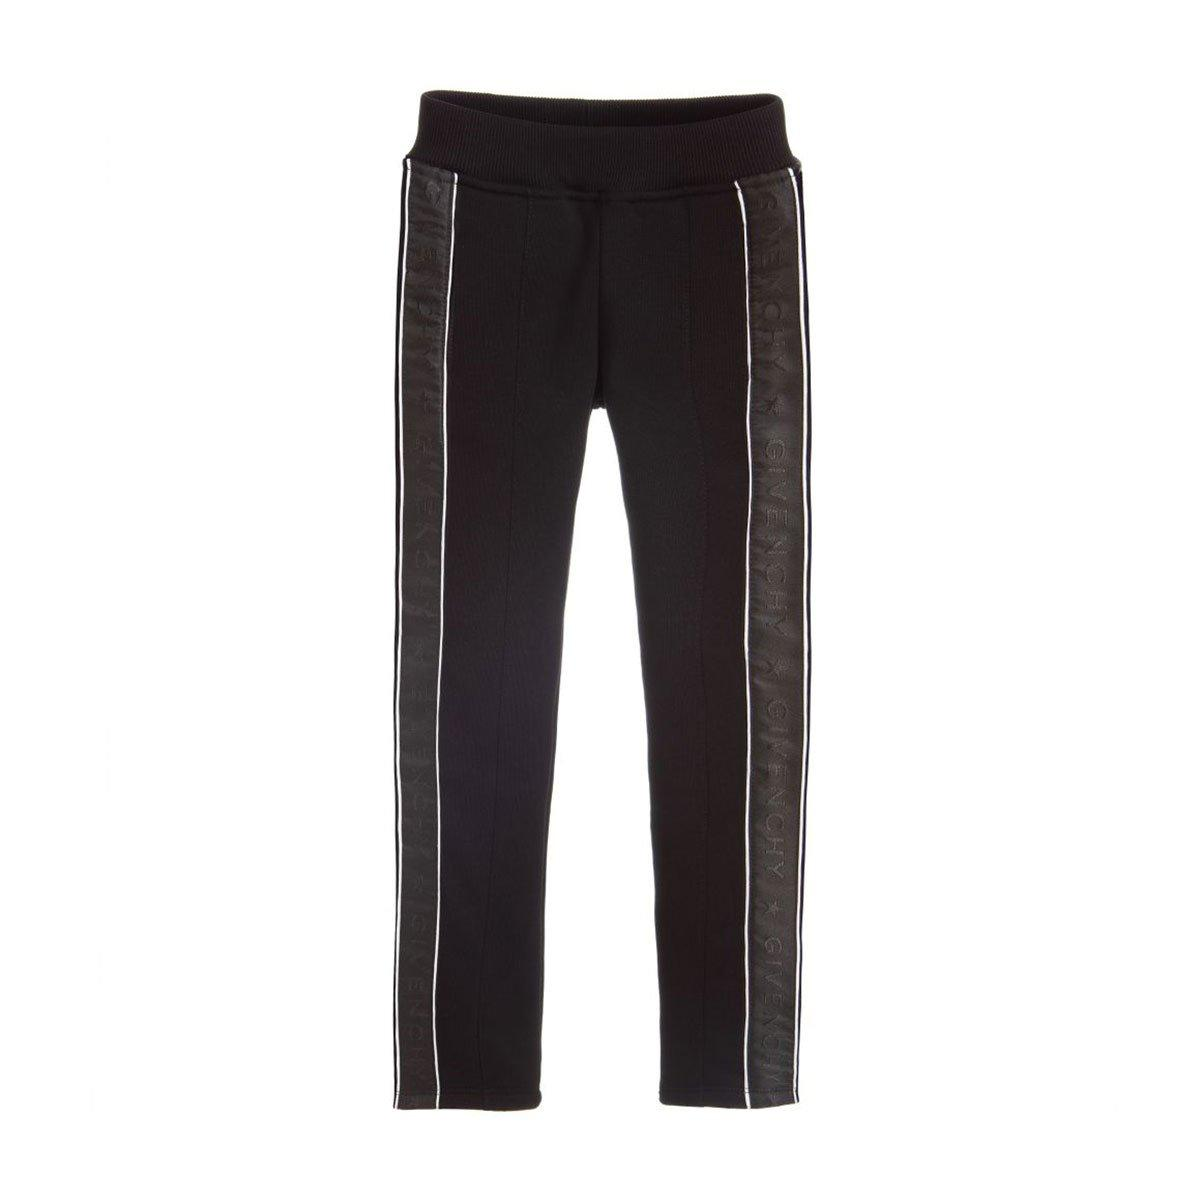 Givenchy Jogging Bottoms For Boys, Black